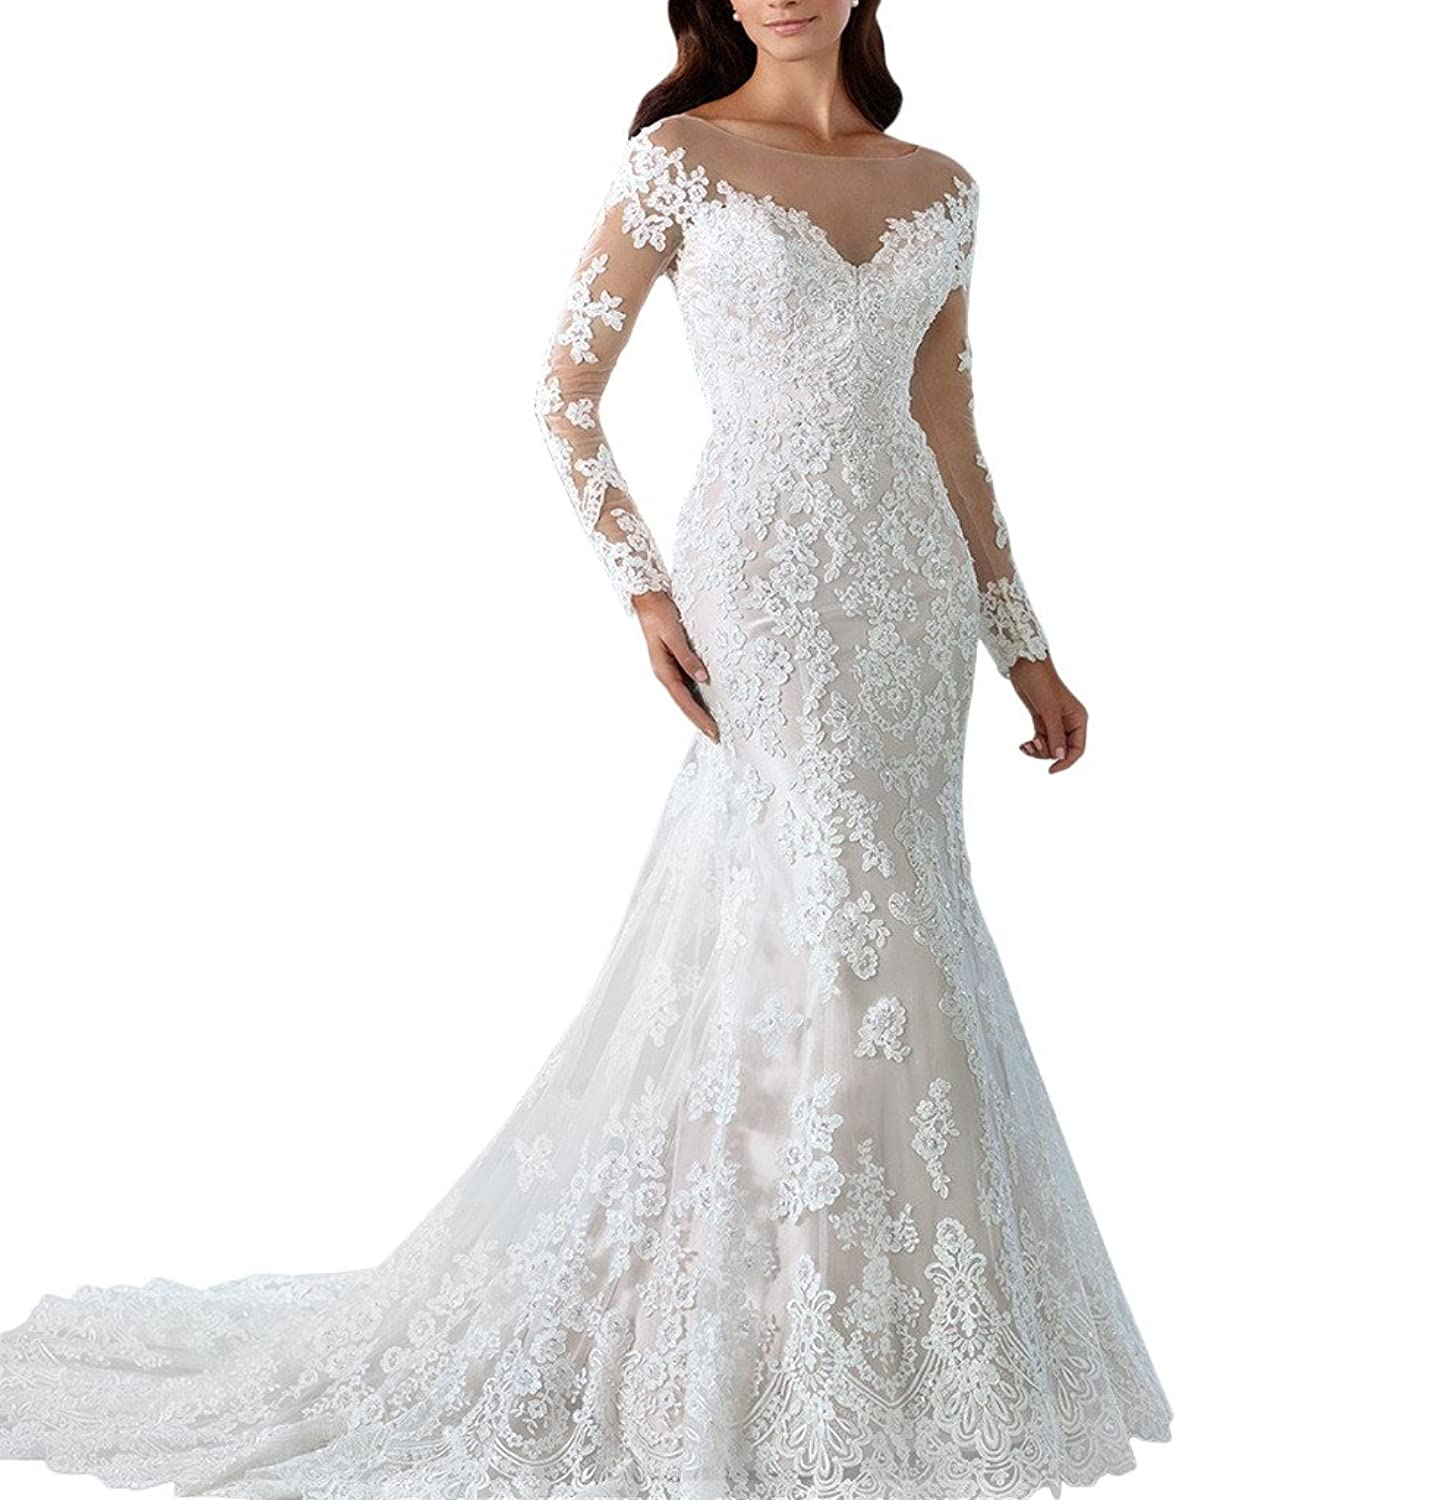 bfbacd04e520 Material:Lace;Feature:Mermaid/Trumpet;Appliques;Chapel Train;Beading;Long  sleeves. Fully lined with built-in bra. In order to make dress perfect on  you, ...